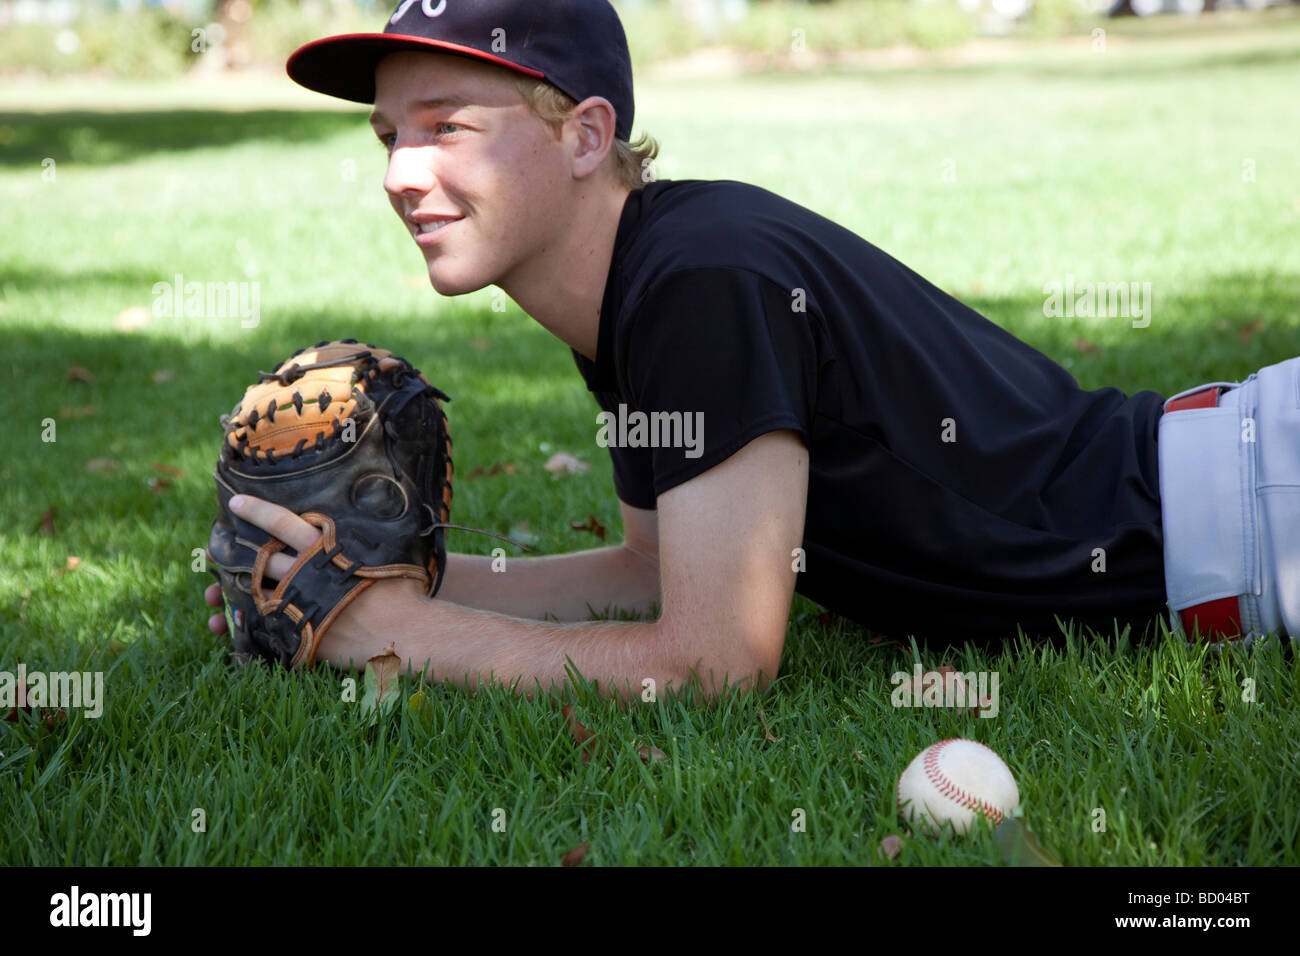 teenager lies on grass with base ball and catchers mit - Stock Image